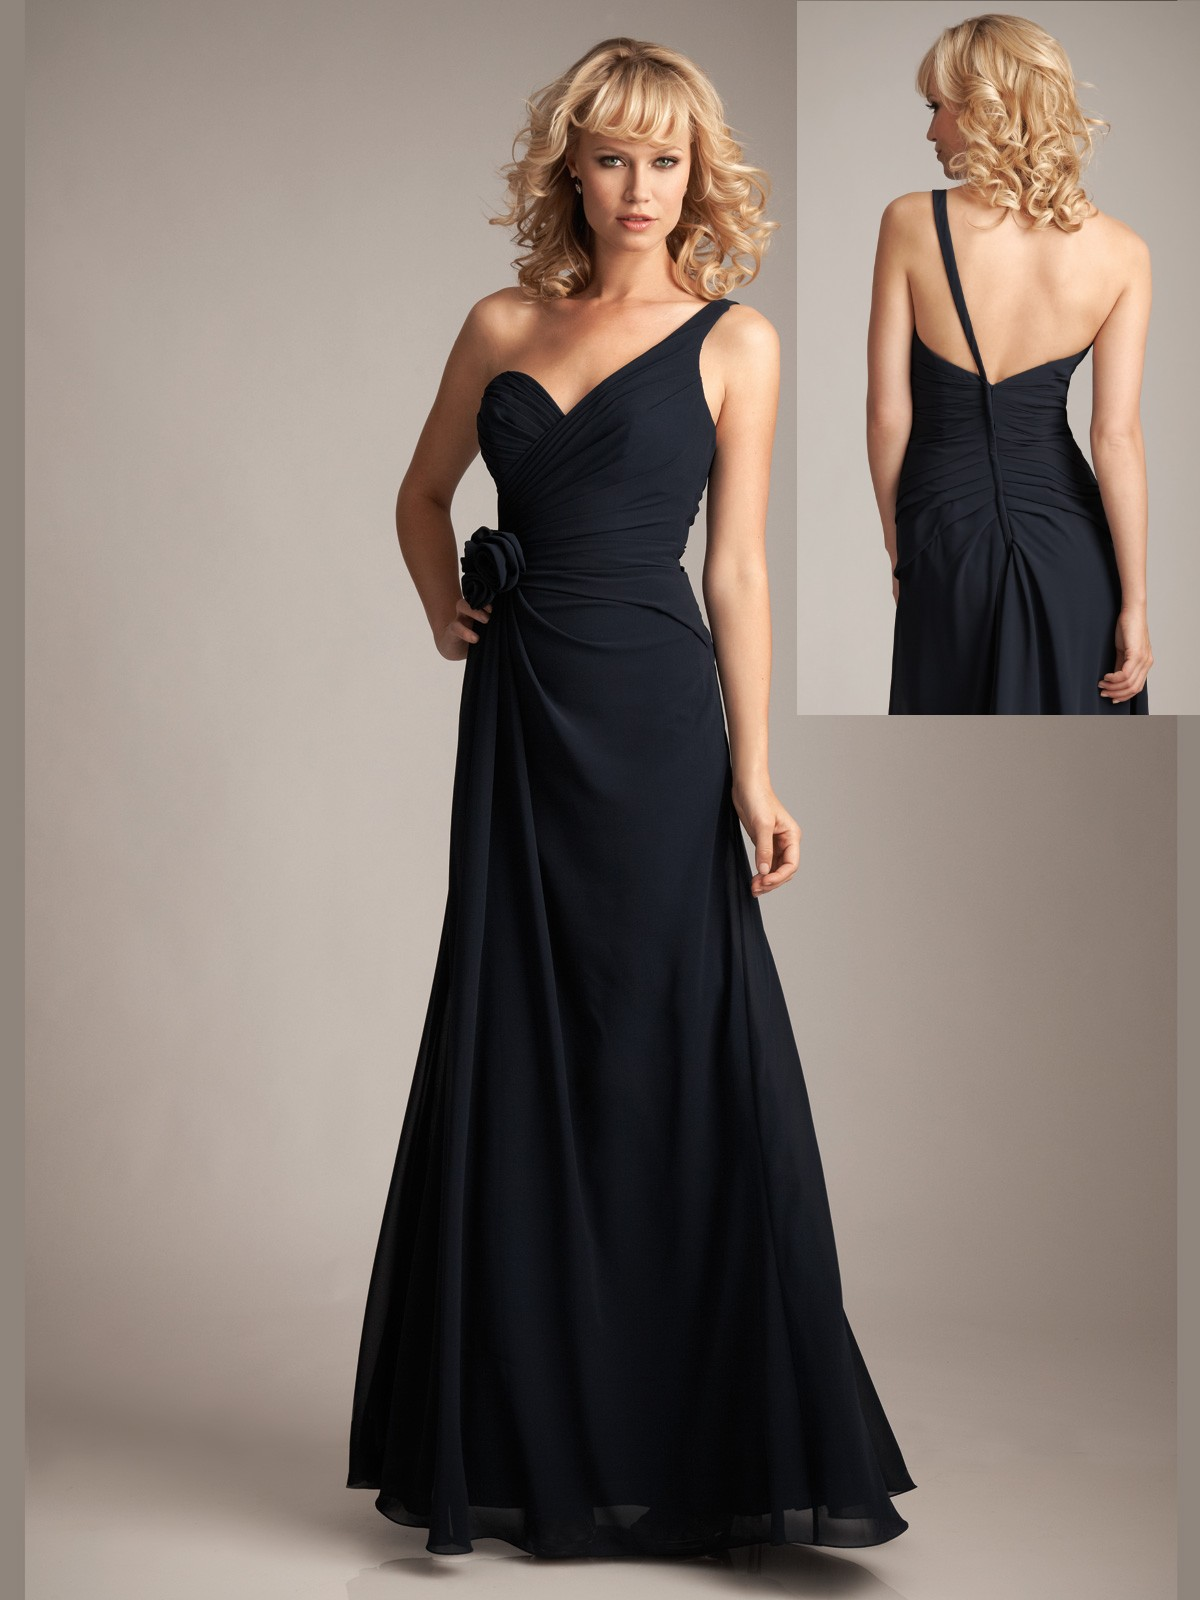 black one strap bridesmaid dress